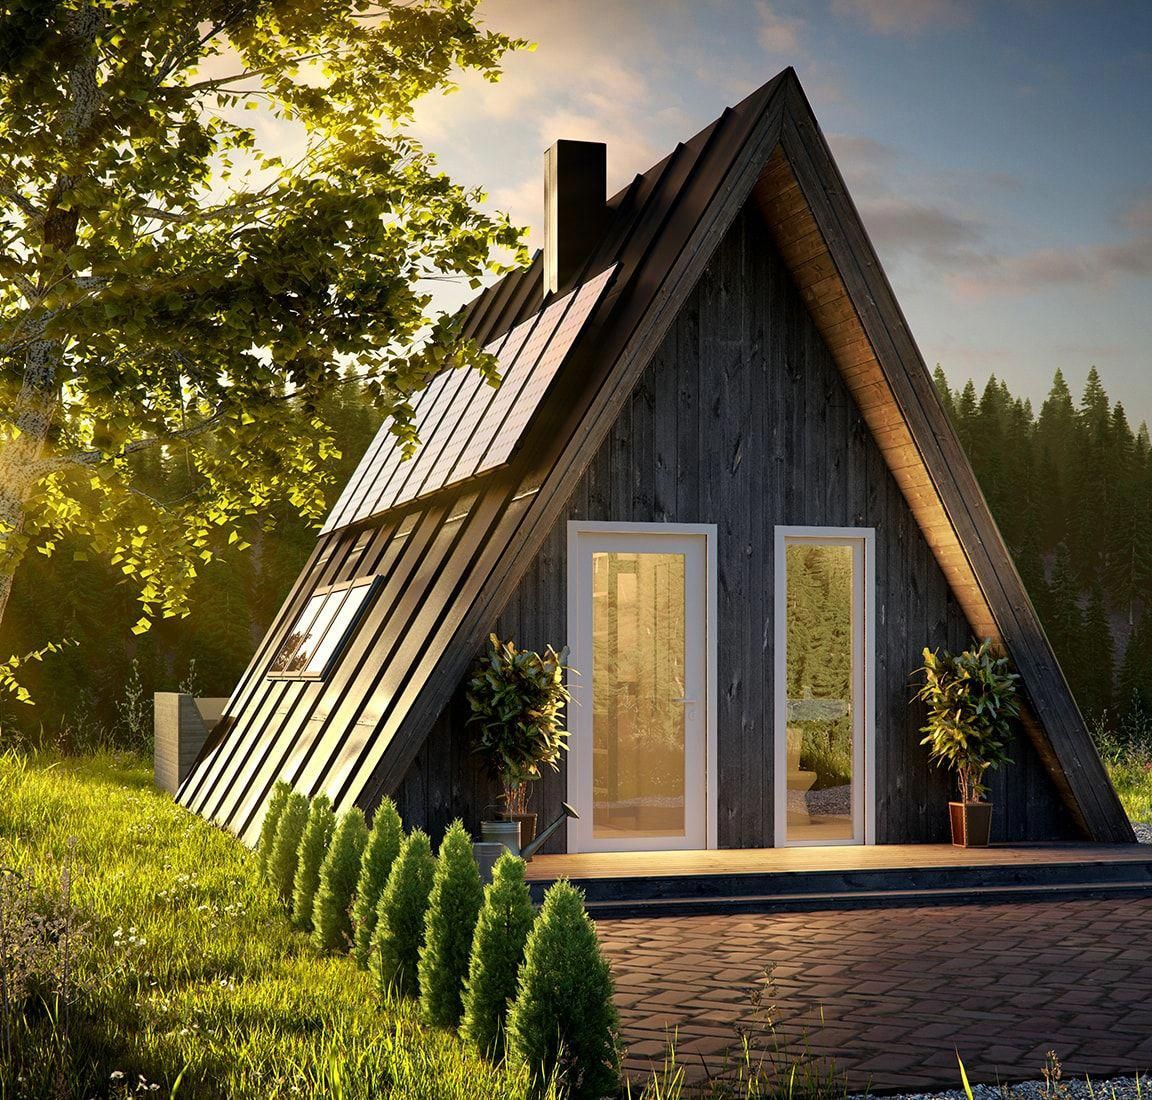 Affordable Housing With A Frame Kit Homes Aframeinterior A Frame House A Frame Cabin A Frame House Plans